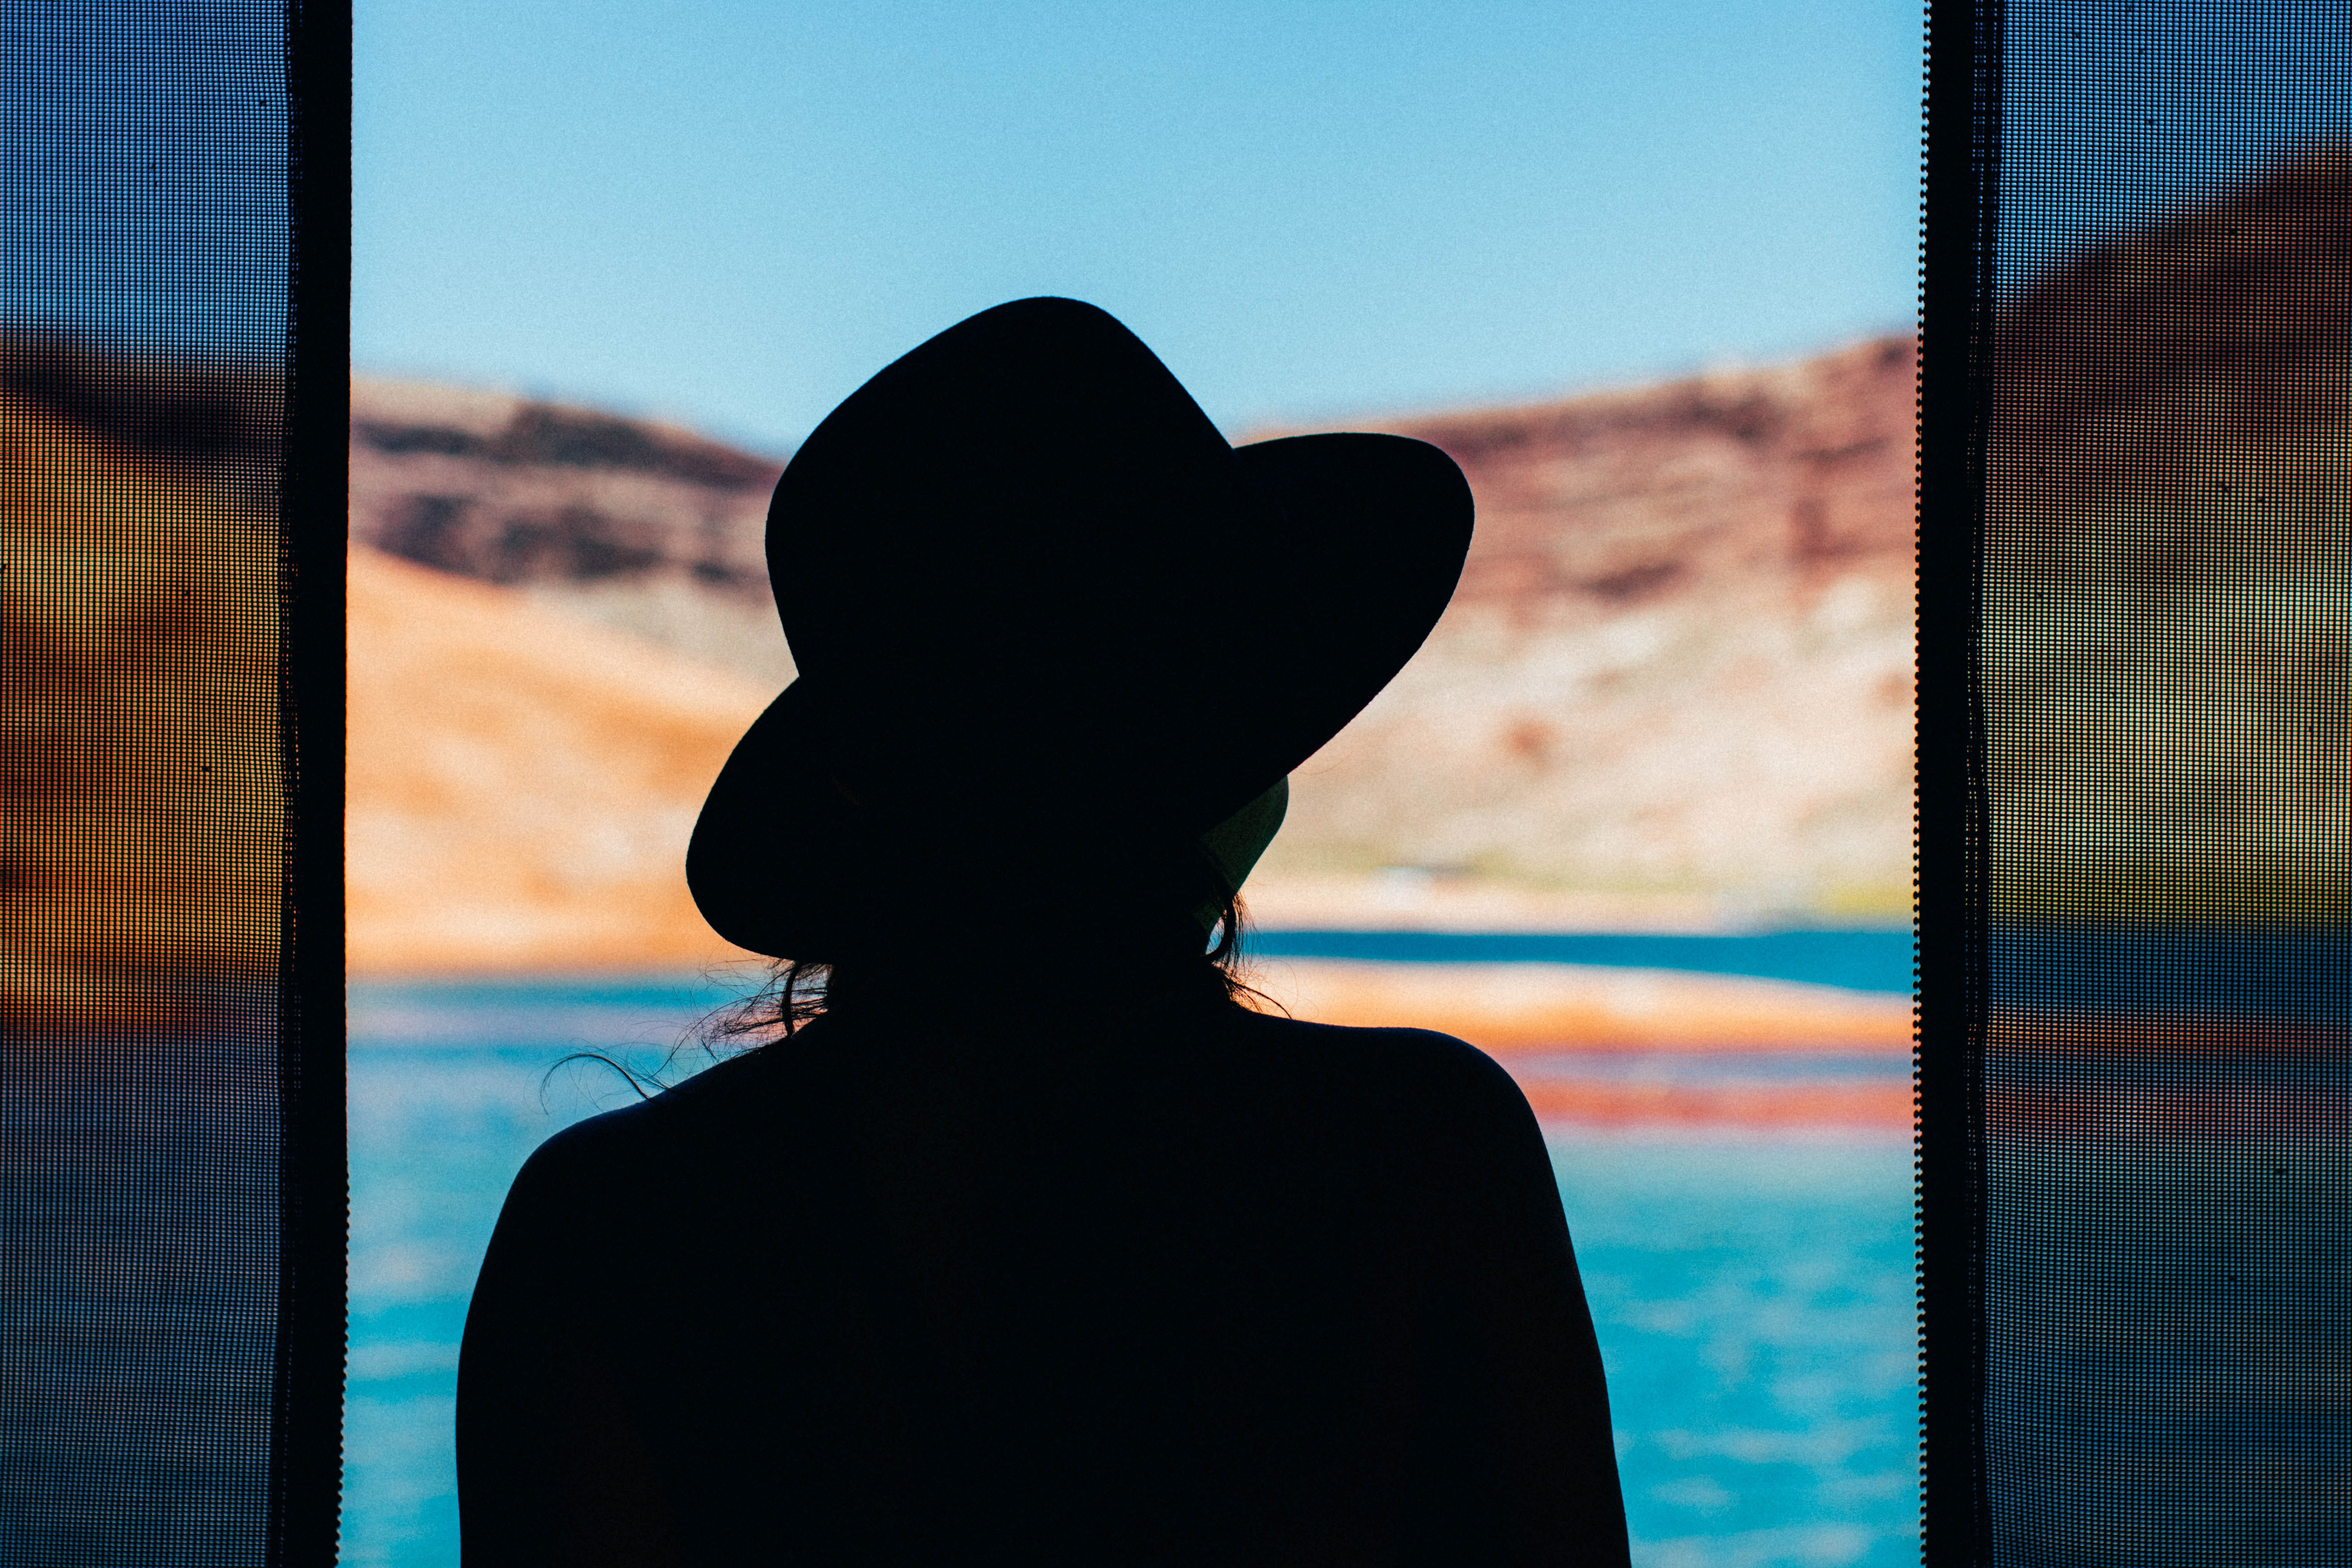 Silhouette of a woman in a hat between curtains looking at the water in Lake Powell